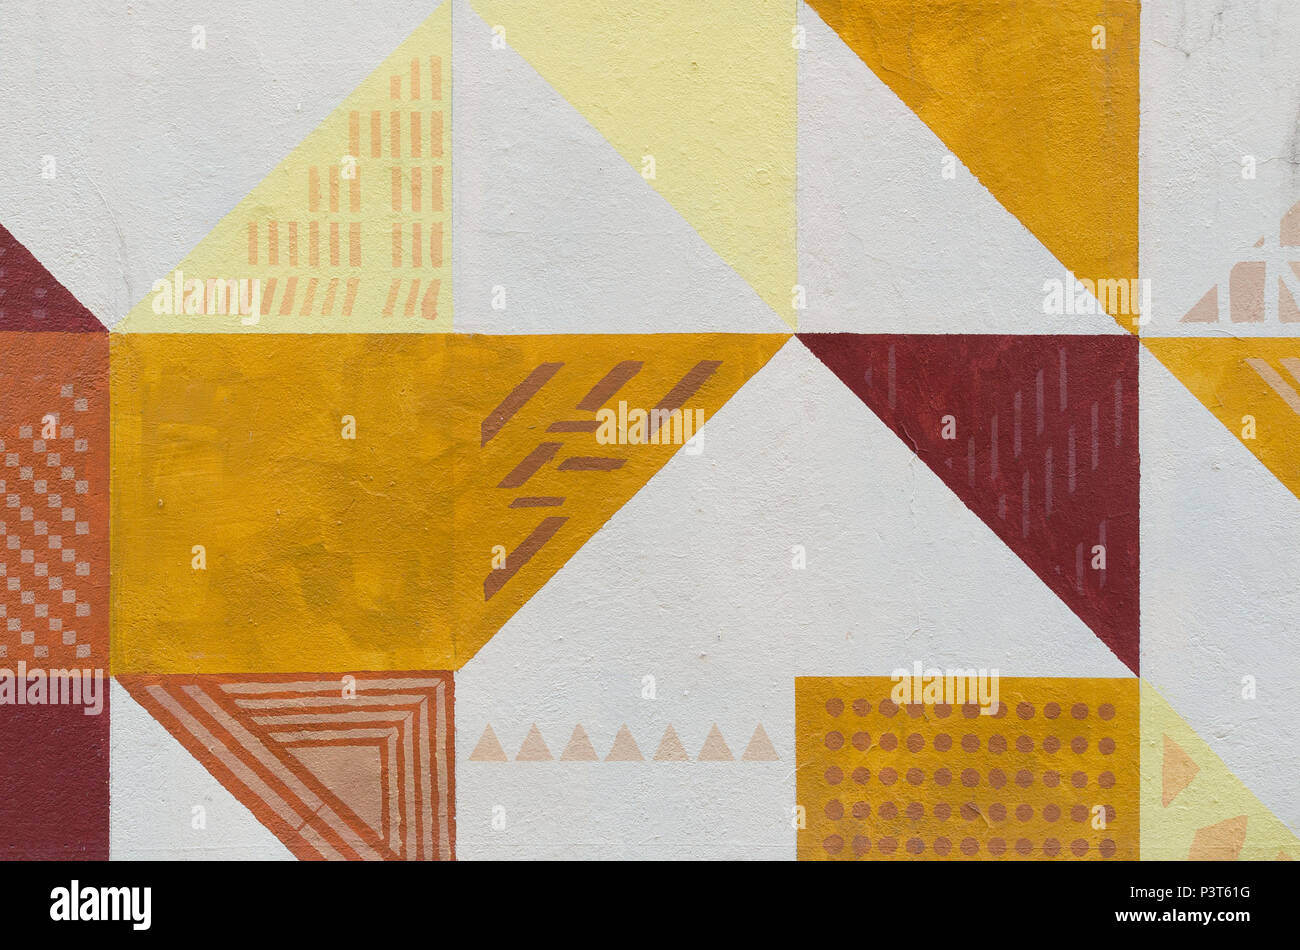 Wall art painted texture. Triangular patterns, colorful background ...